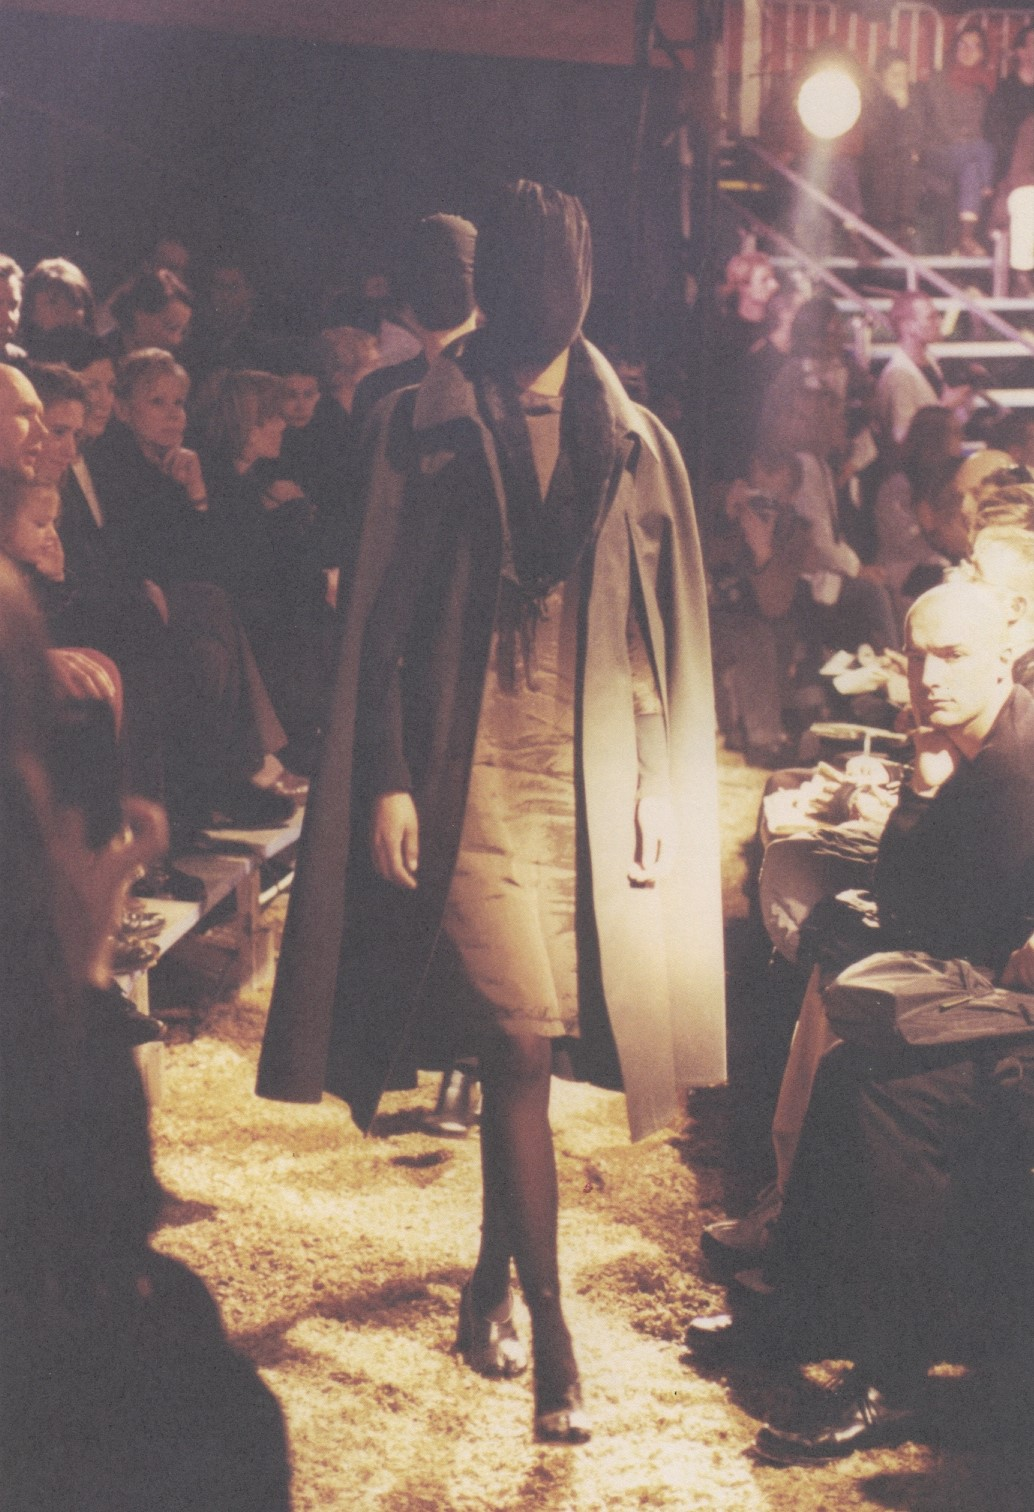 ronald stoops maison martin margiela fashion show bois de boulogne paris fall winter 1995 1996